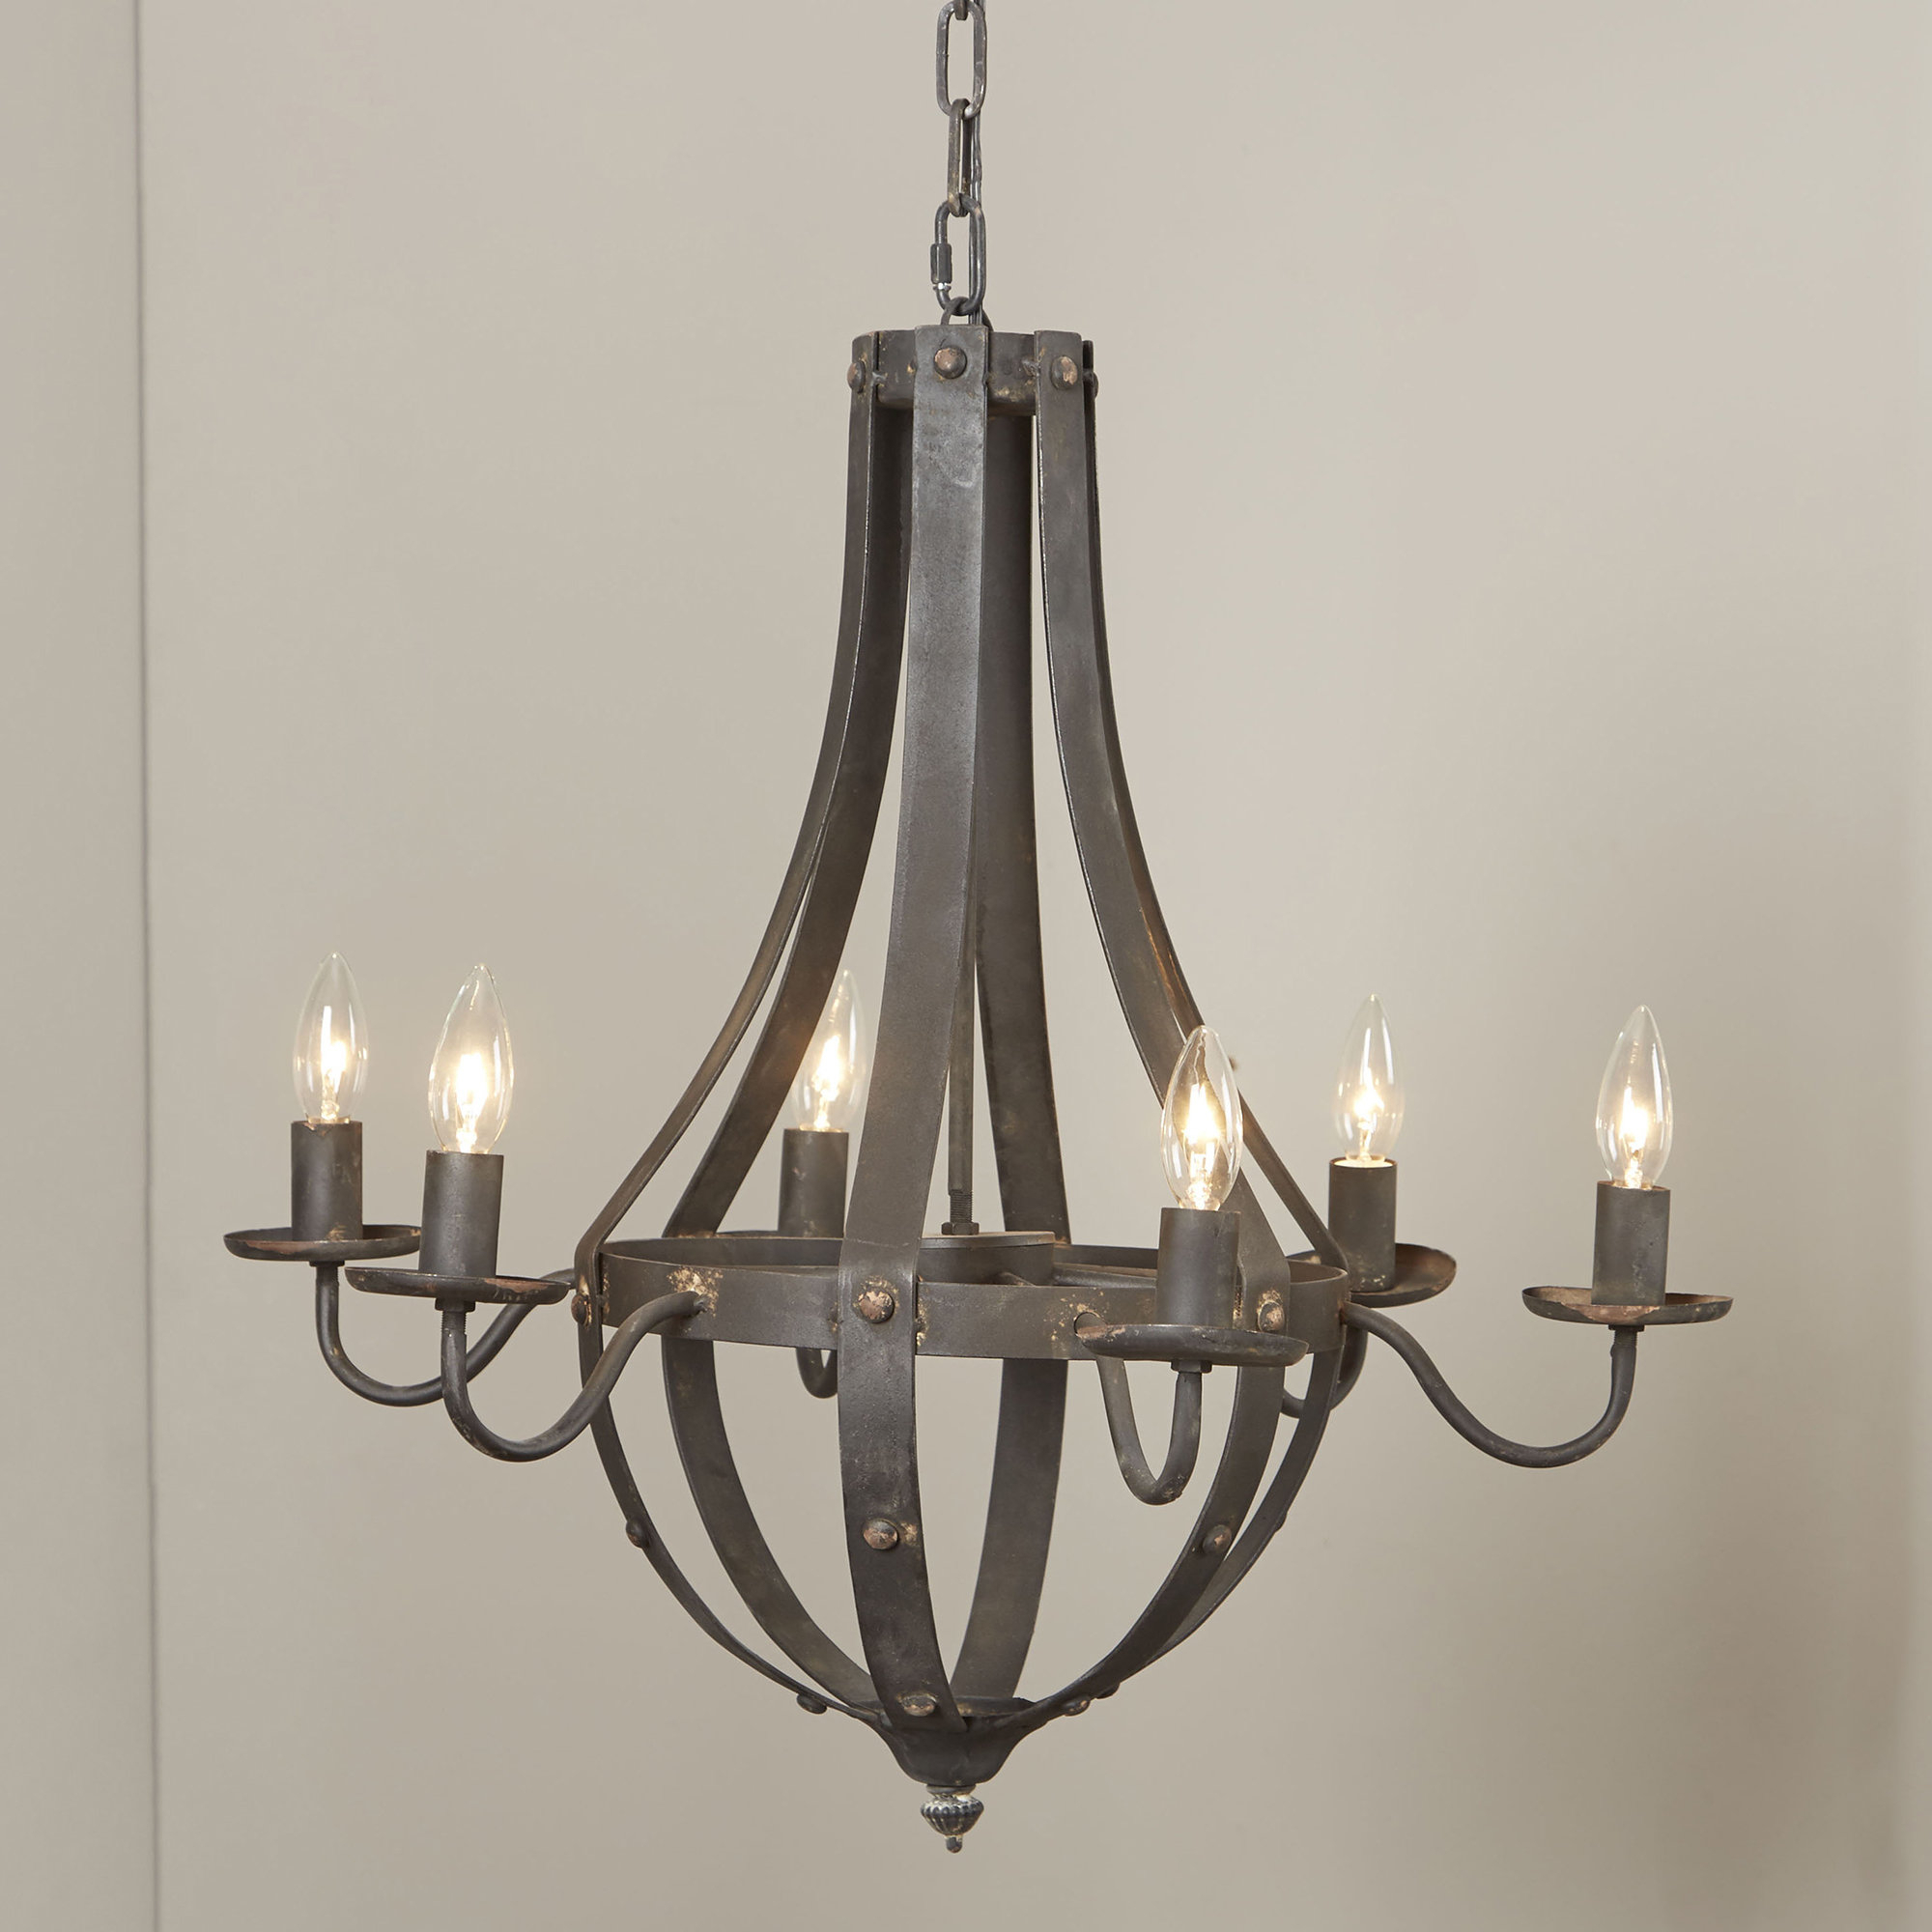 Kenna 5 Light Empire Chandeliers Within 2019 Foulds 6 Light Empire Chandelier (View 12 of 25)